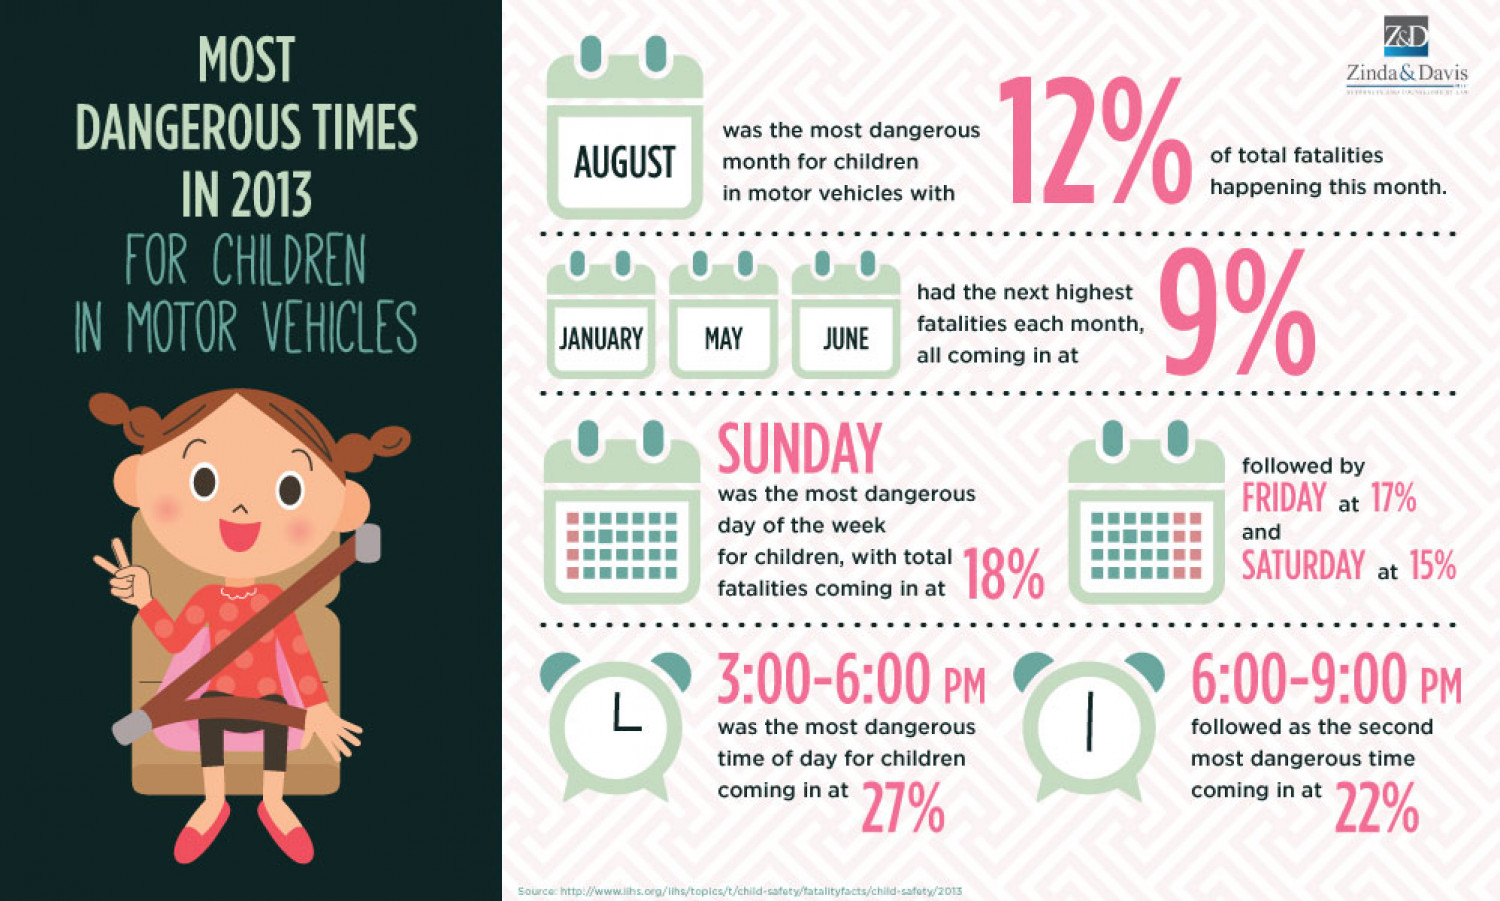 Most Dangerous Times For Children In Motor Vehicles In 2013 Infographic